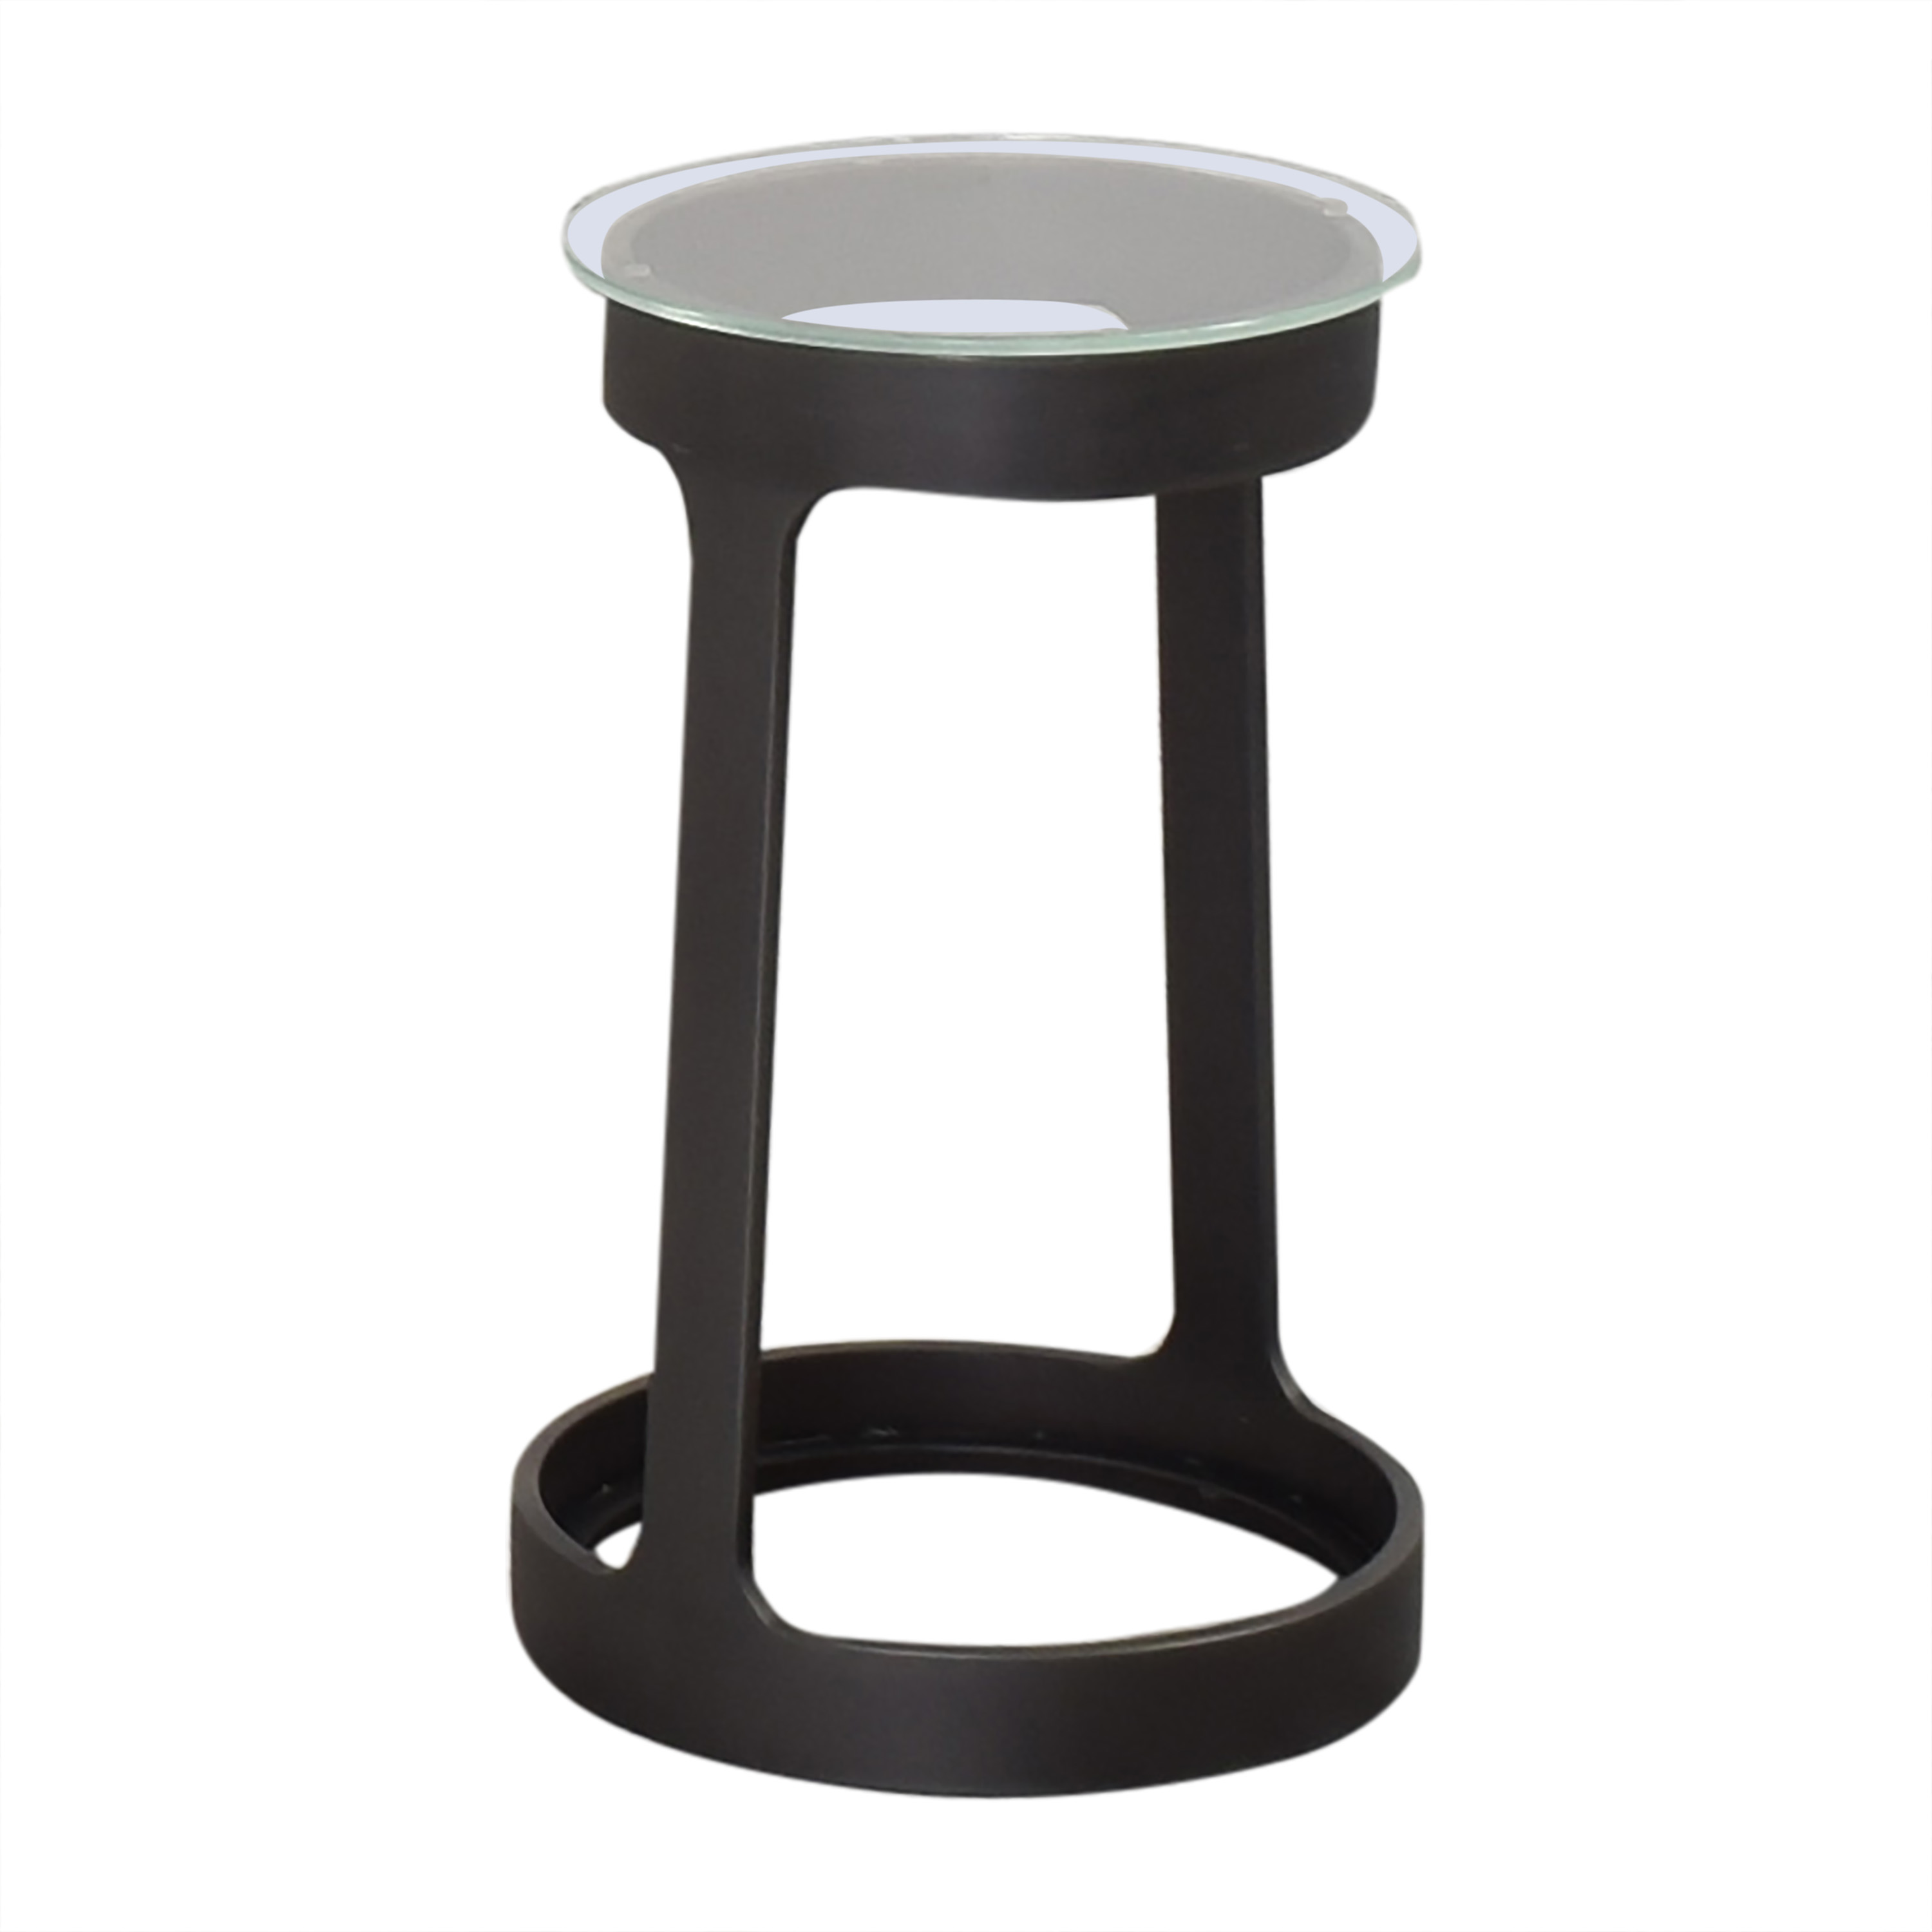 Restoration Hardware Round Cocktail Side Table